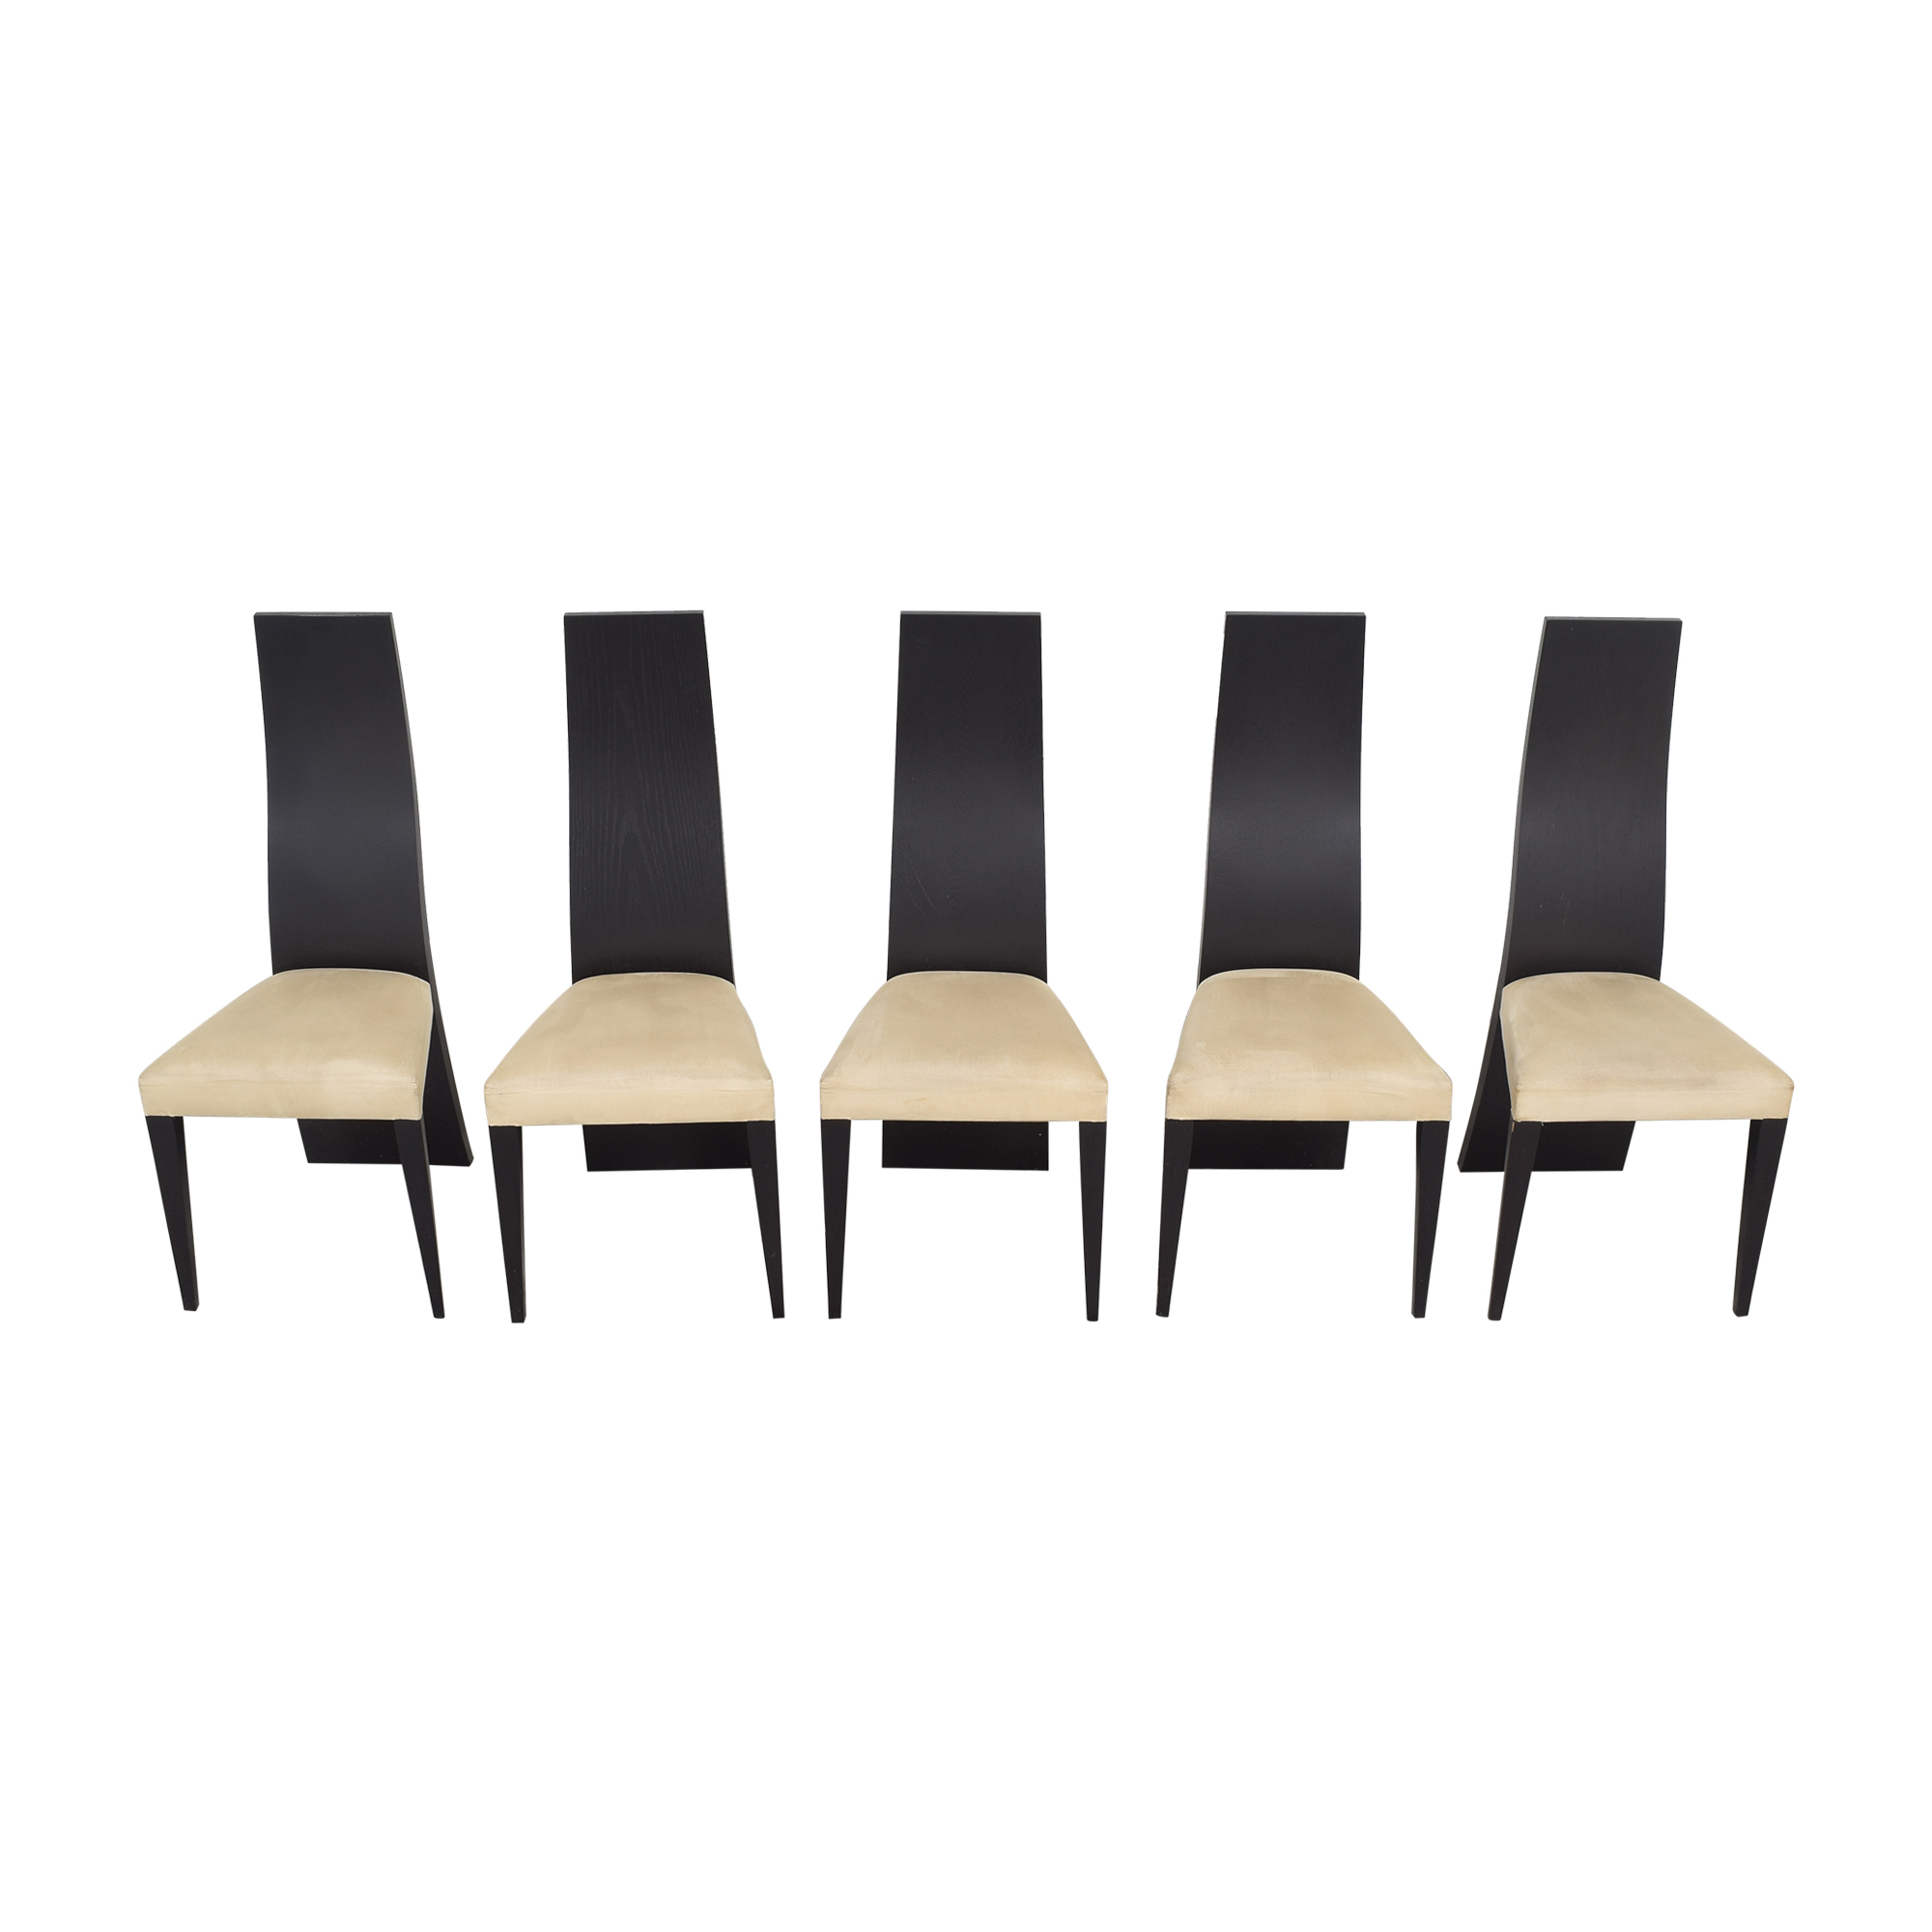 La Maison Contemporaine La Maison Contemporaine Solid Back Dining Chairs Dining Chairs